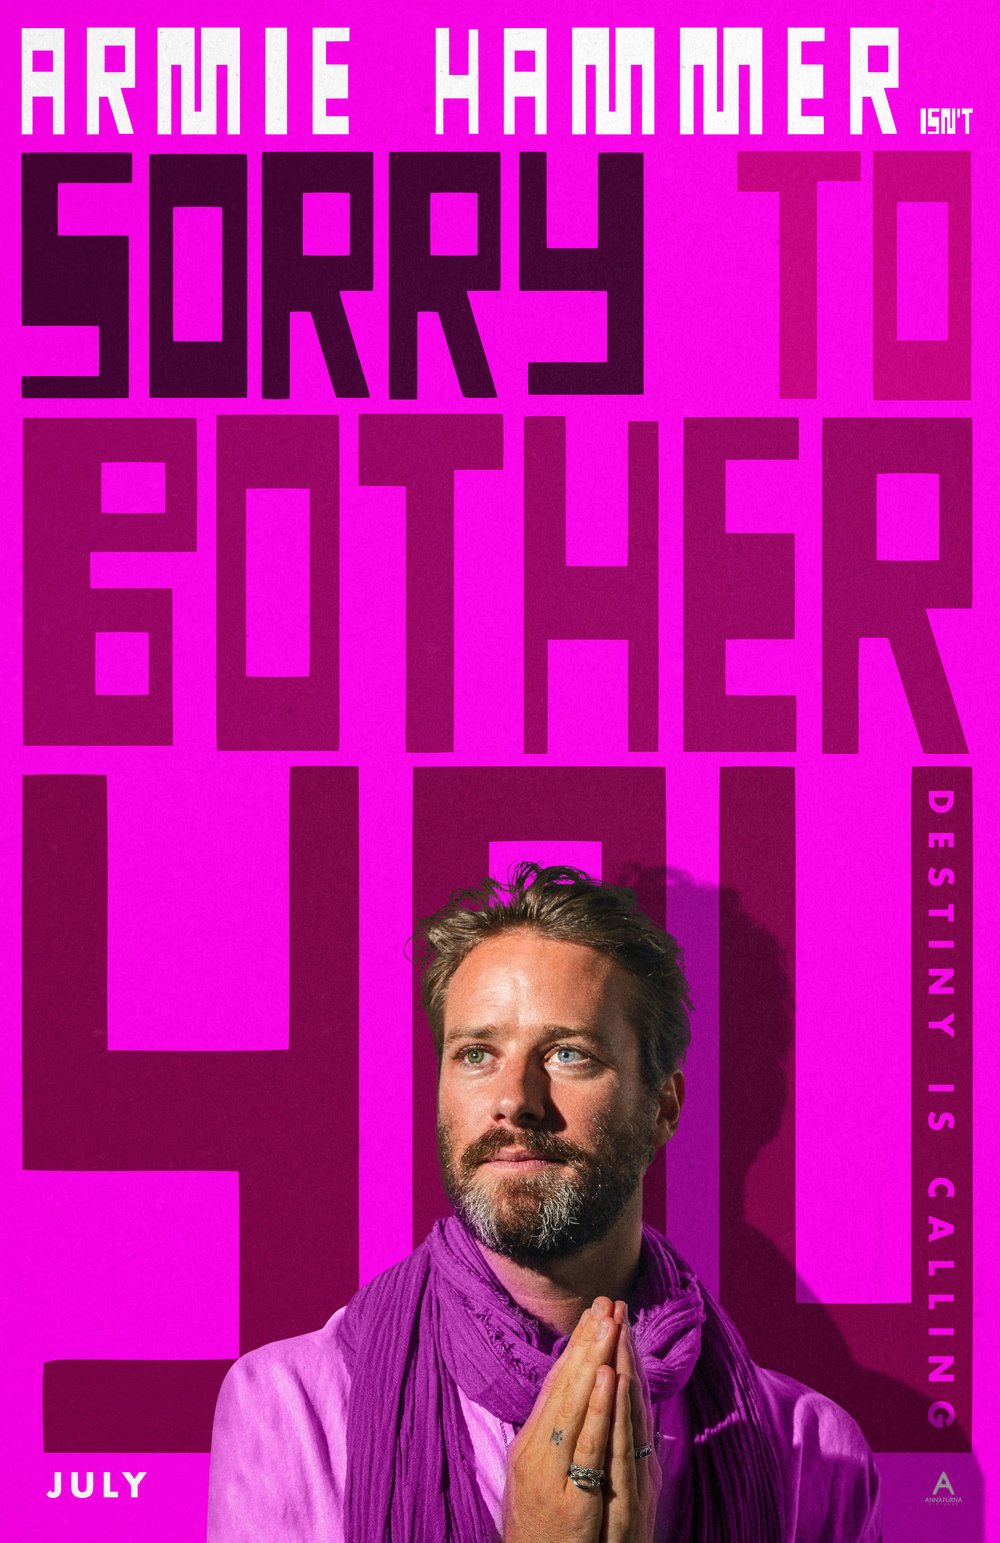 Sorry-To-Bother-You-poster-Armie-Hammer.jpg